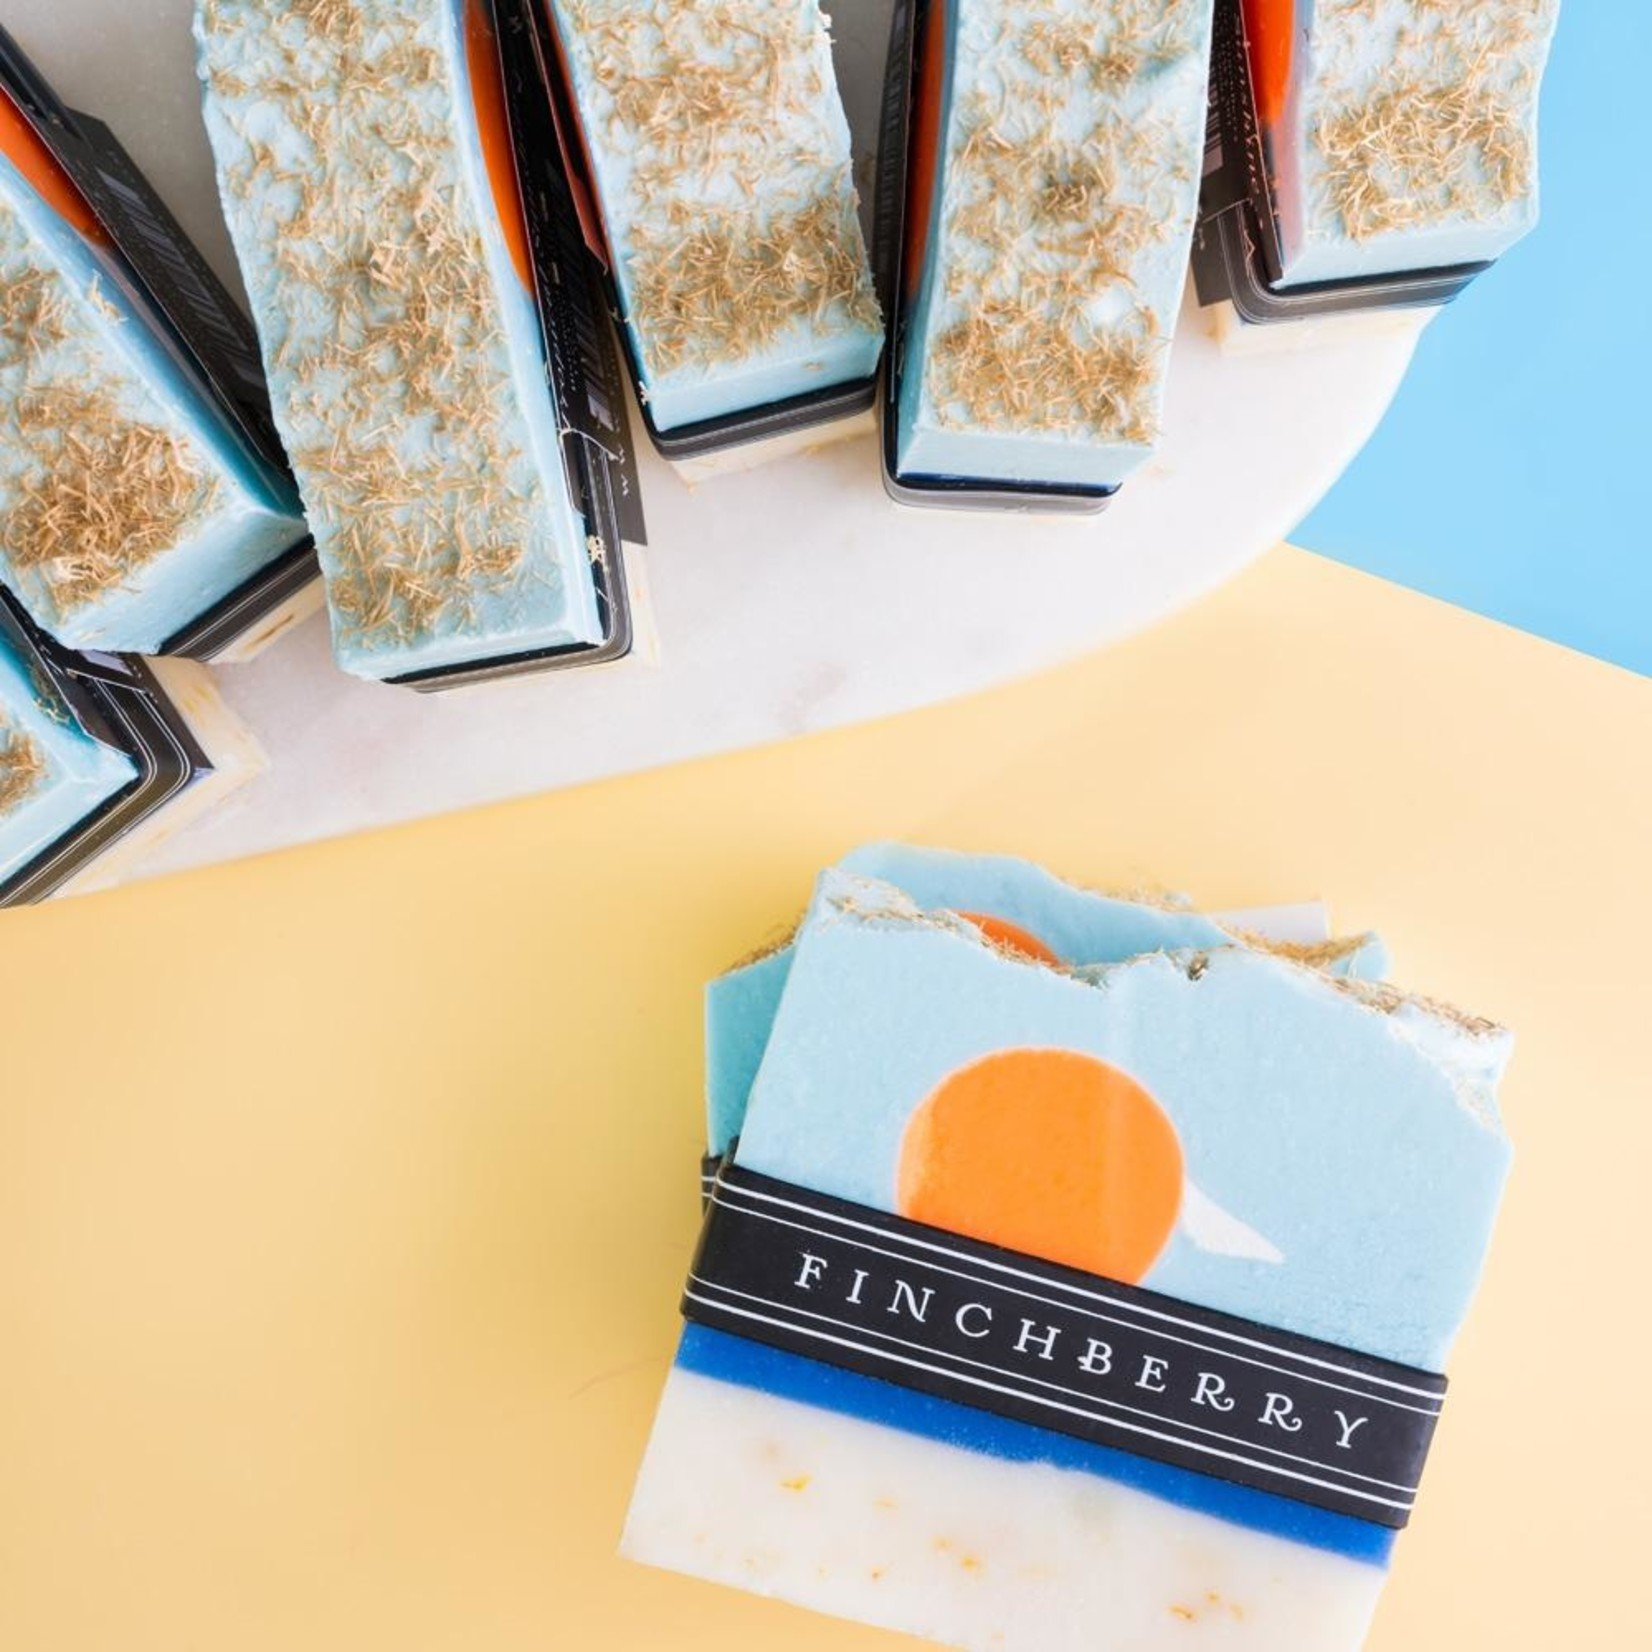 FinchBerry Soapery Tropical Sunshine - Handcrafted Vegan Soap